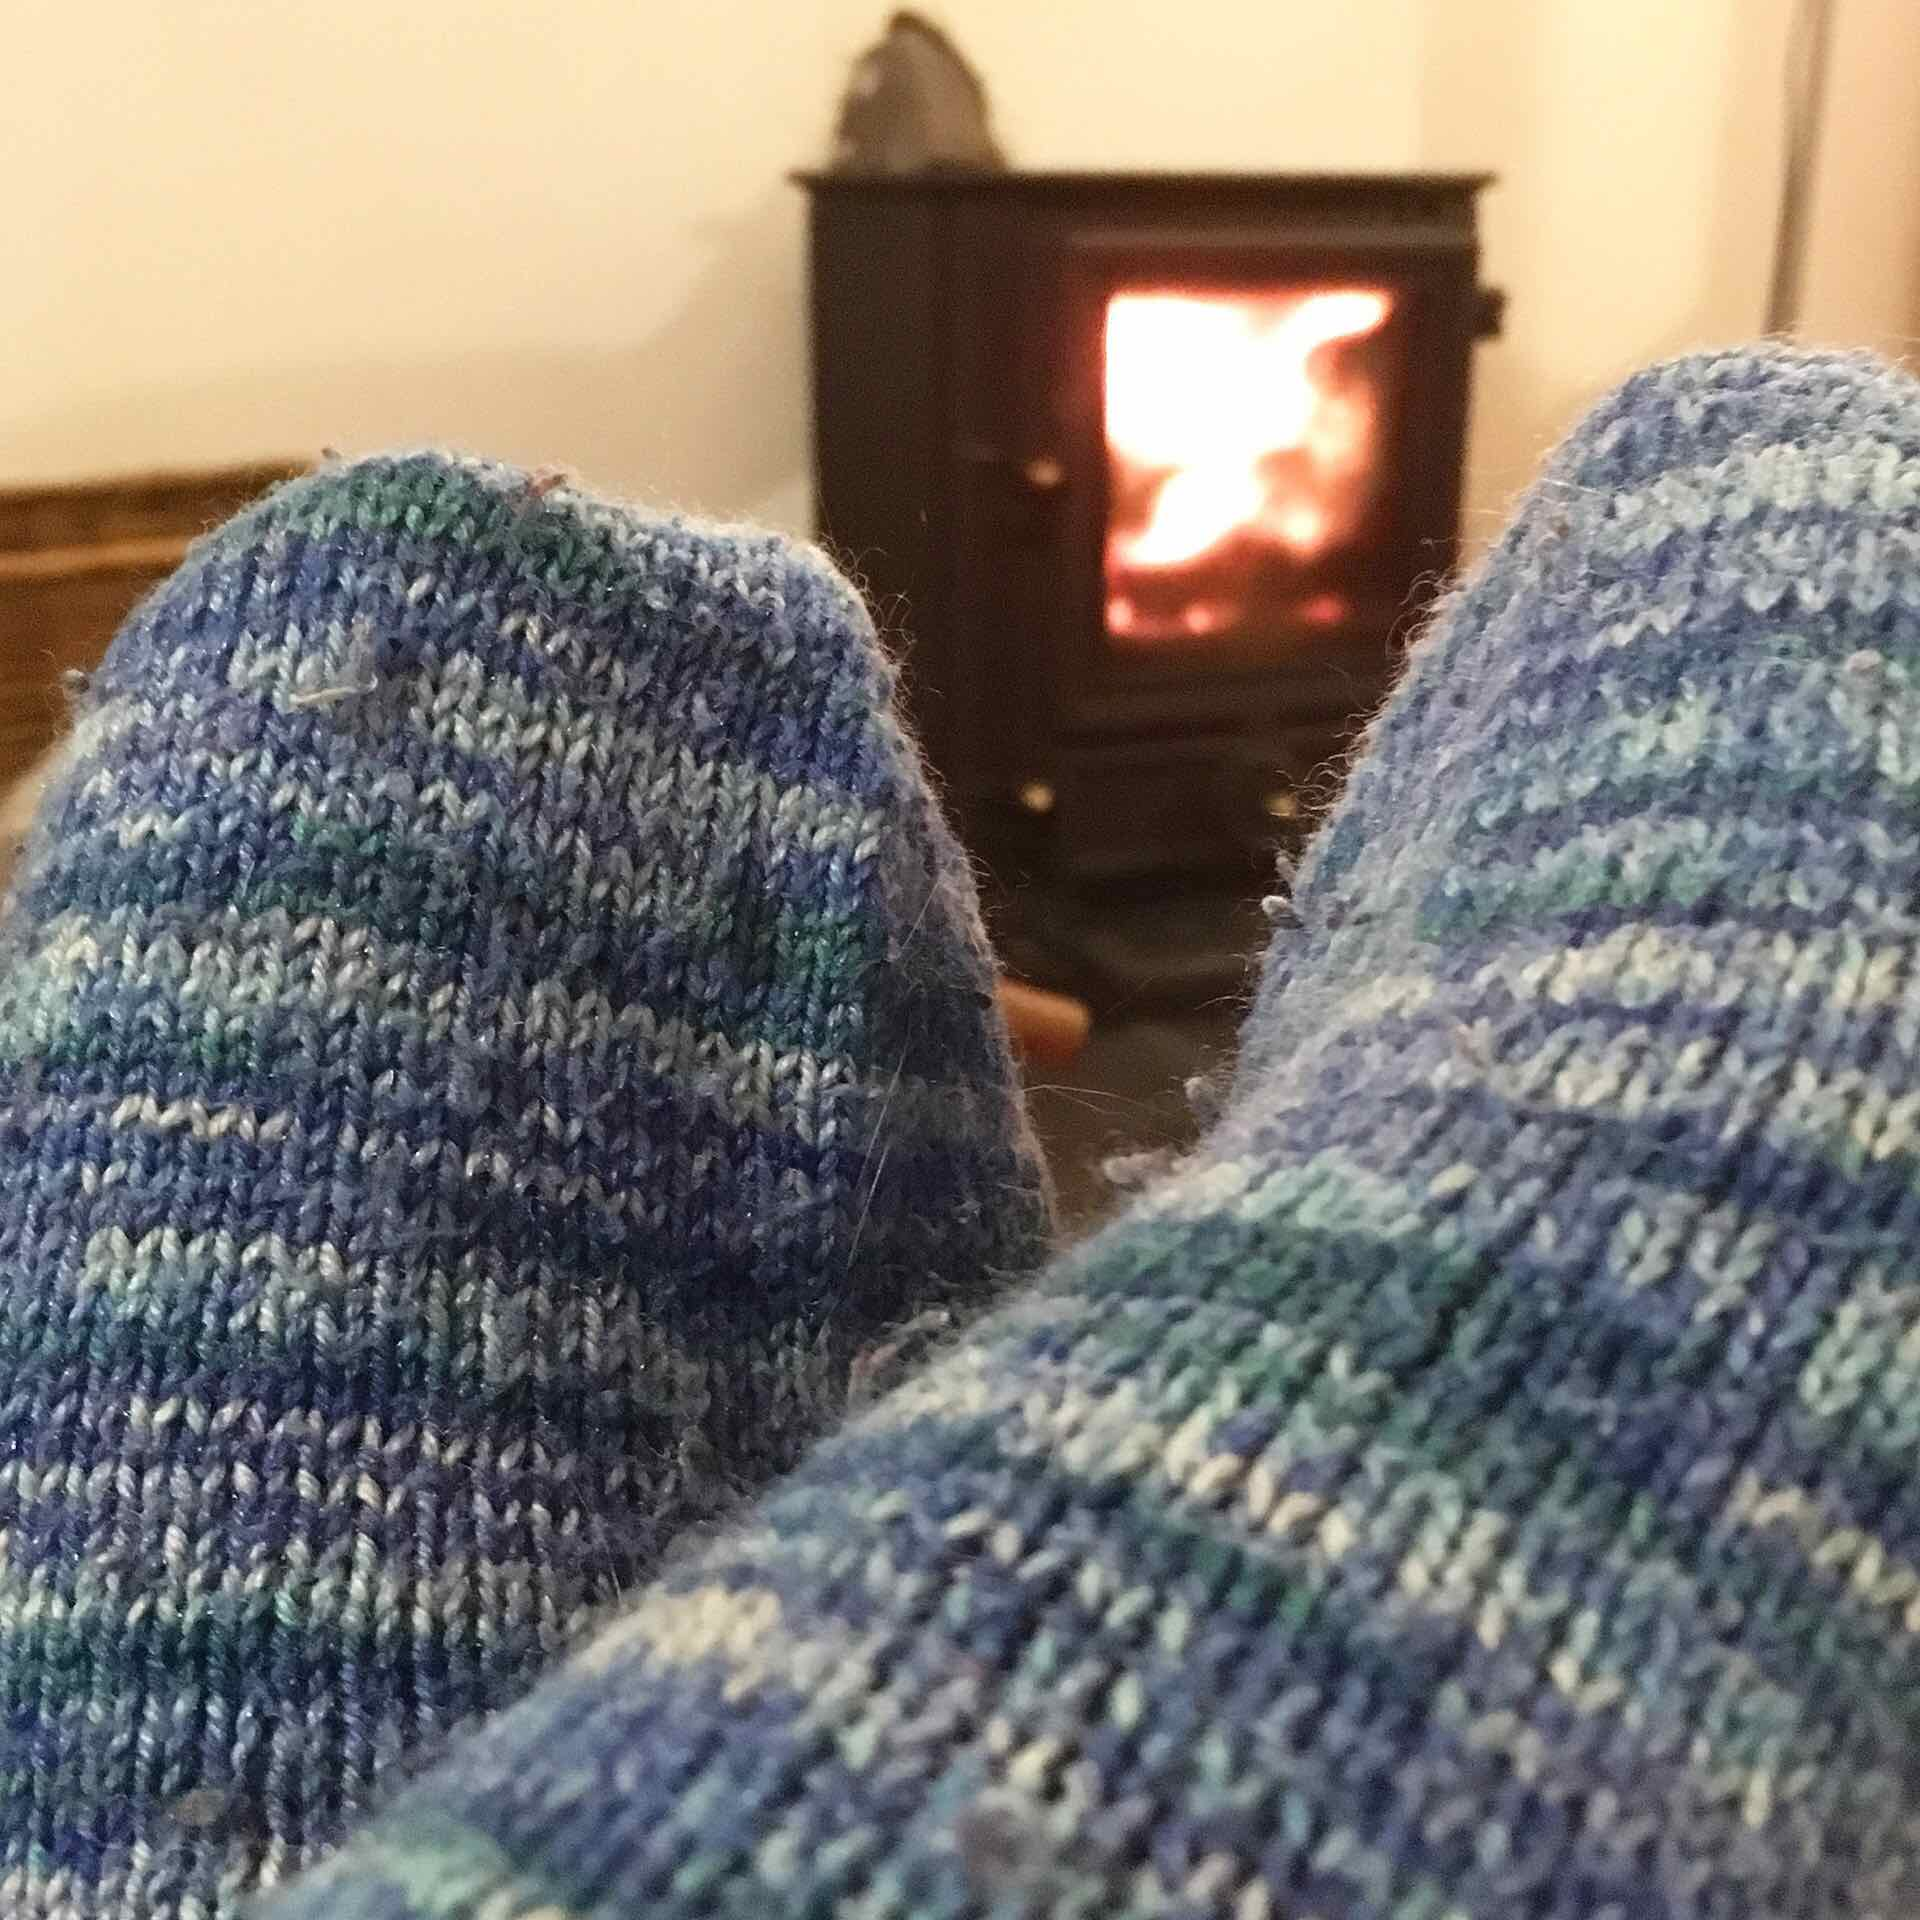 Wooly socks by the fire